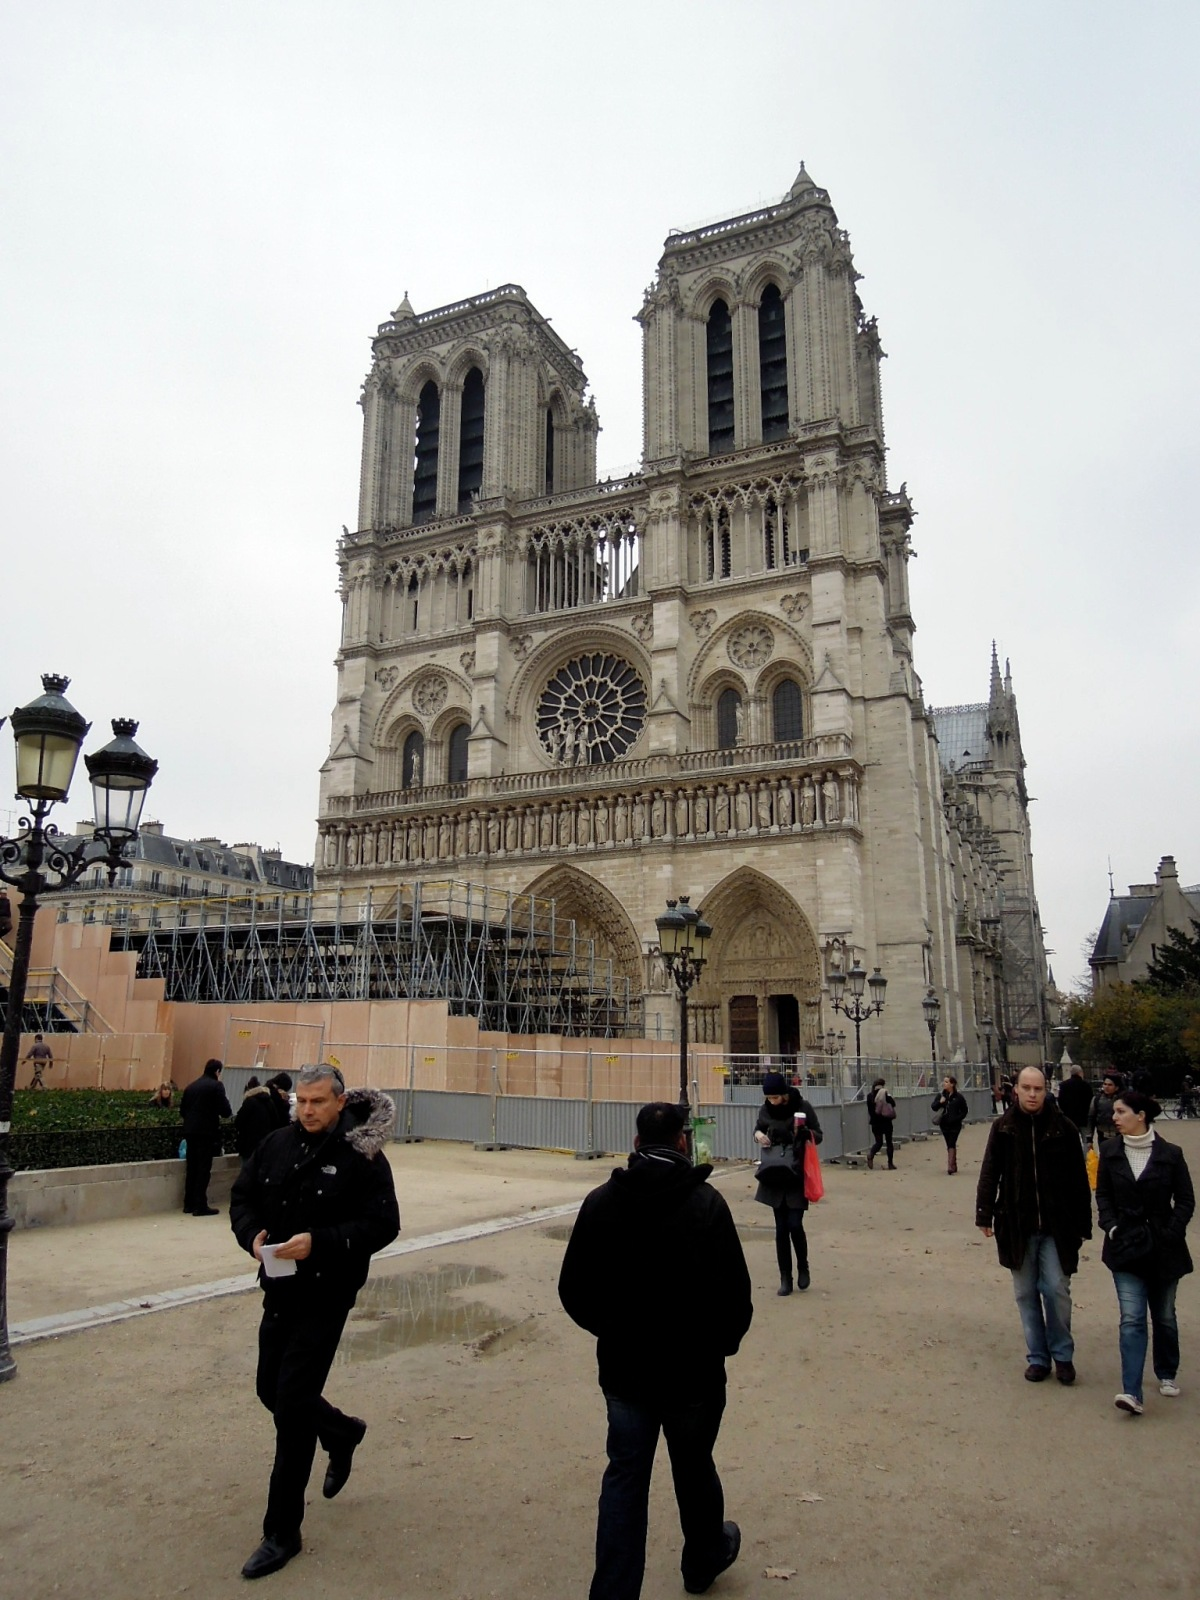 Notre Dame with construction in front